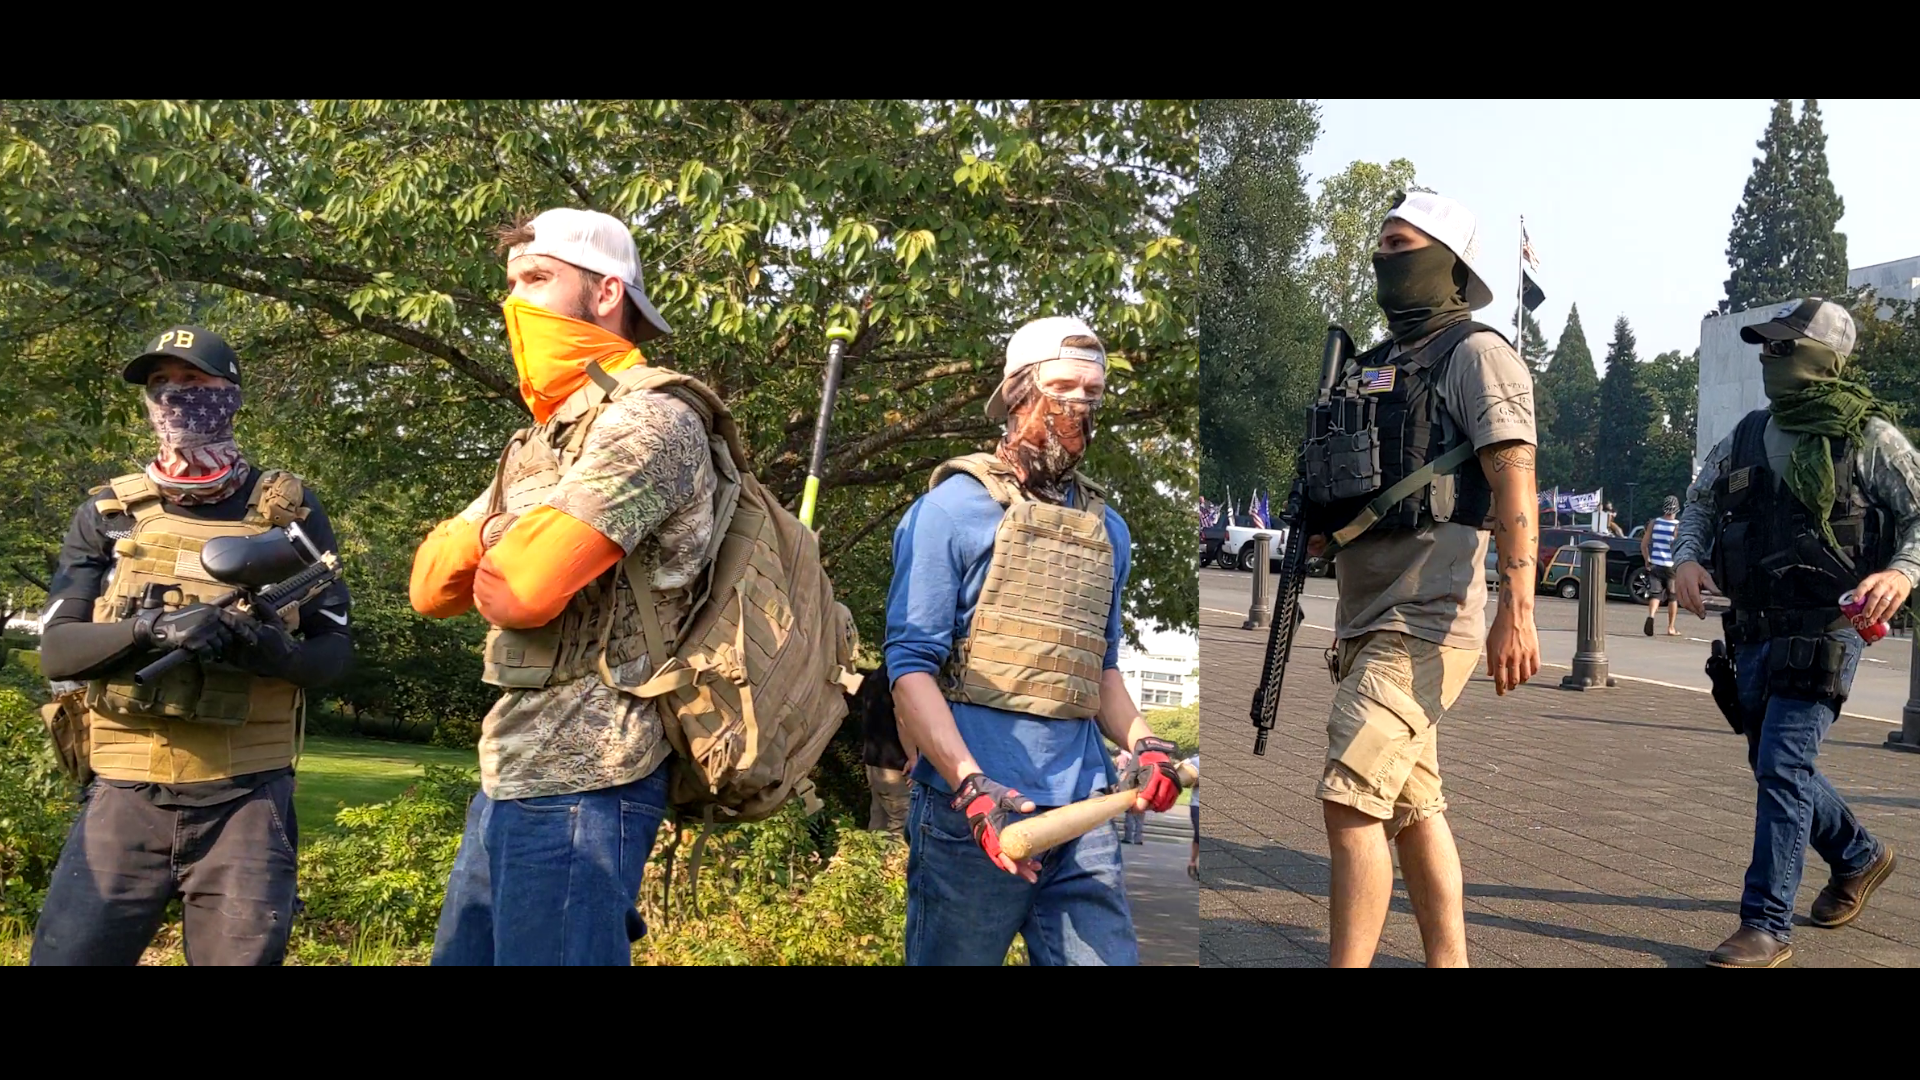 Men in body armor carrying a paintball gun, a baseball bat, and AR-15 assault rifles